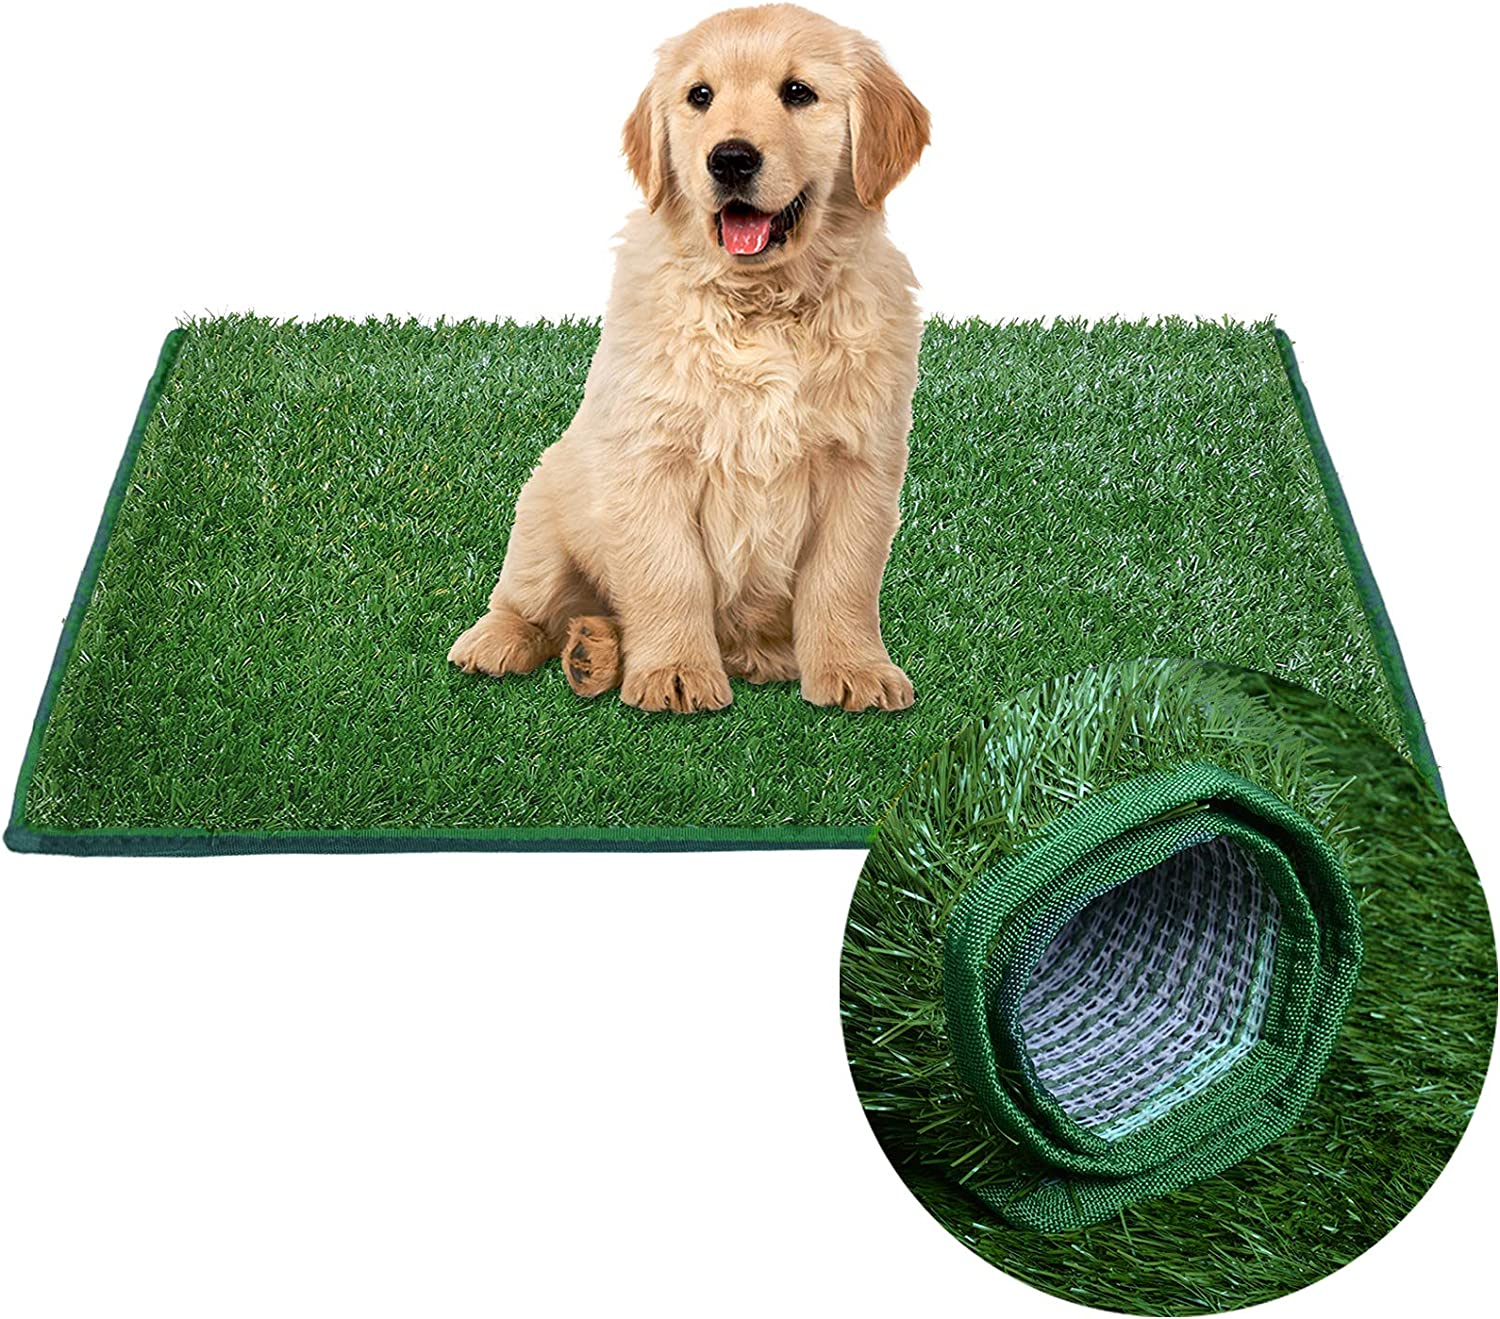 LOOBANI Dog Hemming Grass Bathroom Pads, Artificial Turf Pet Grass Replacement Mat, Portable Puppy Potty Trainer for Indoor/Outdoor Use